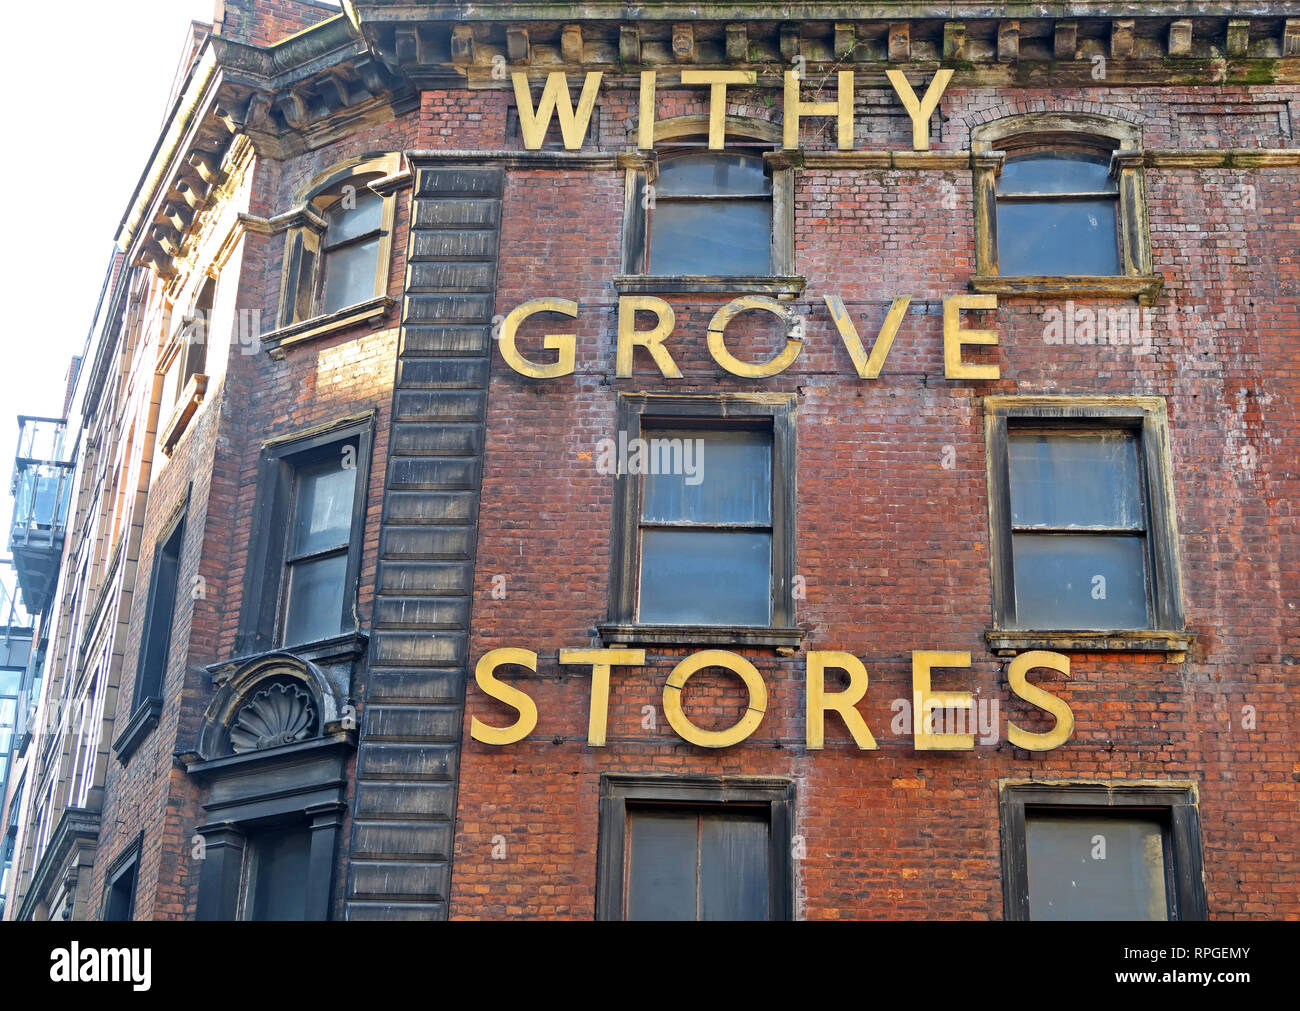 GoTonySmith,HotpixUK,@HotpixUK,Manchester,England,UK,GB,North West England,brick,Withy Grove,Withey Grove Stores,building,red brick,office equipment,historic,history